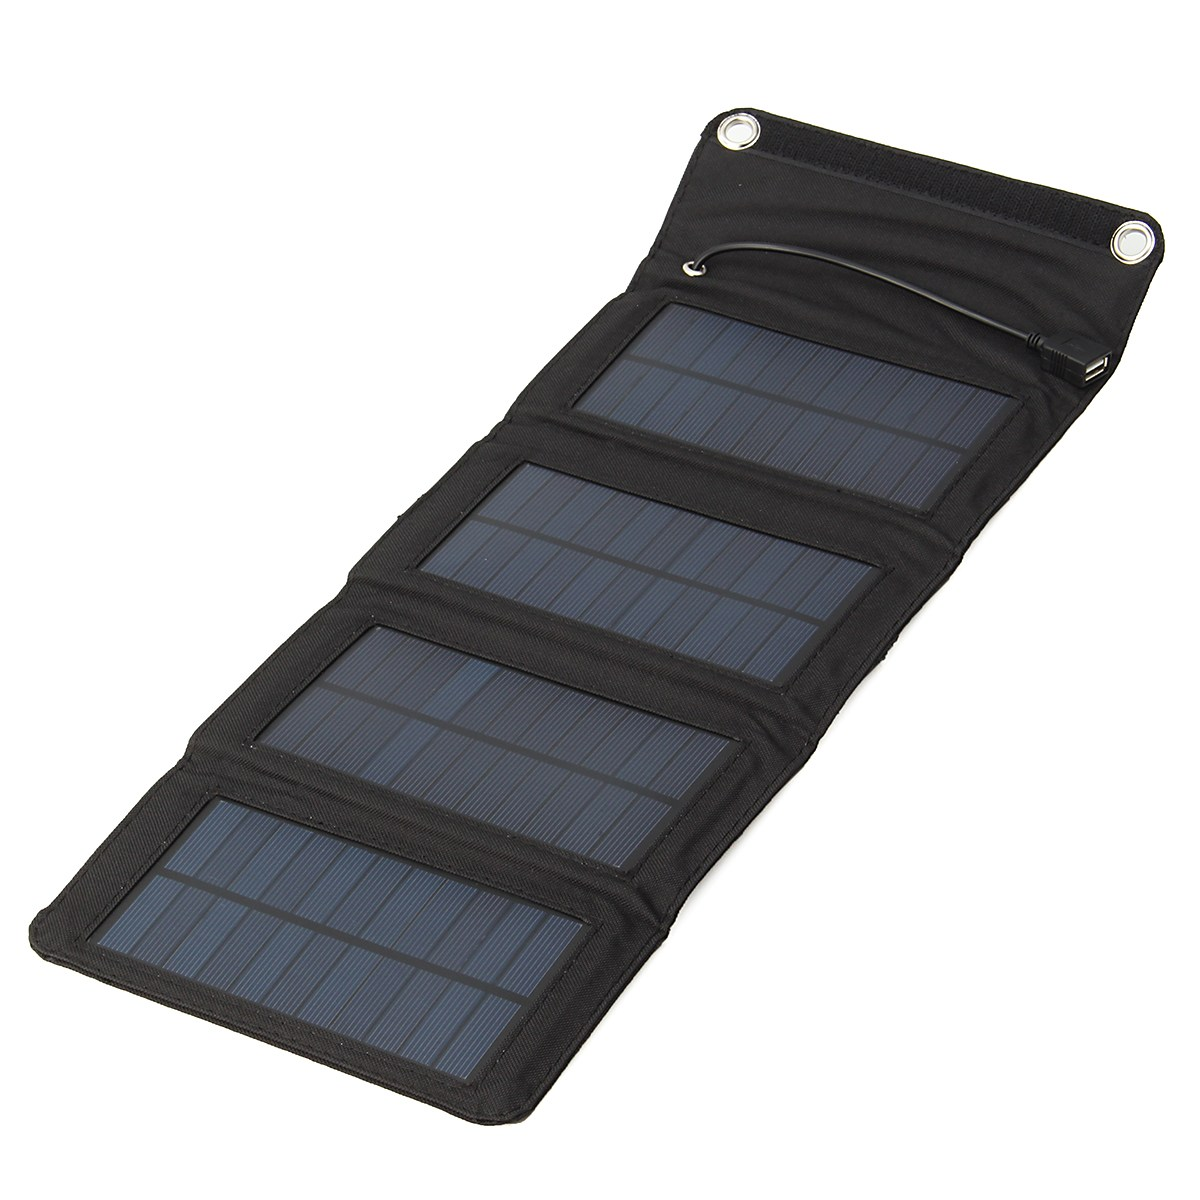 High Quality Sunpower Foldable Charger Battery Powerbank 515x192mm 5.5V PVC Fbric Solar Panel Outdoor Travel Camping tools